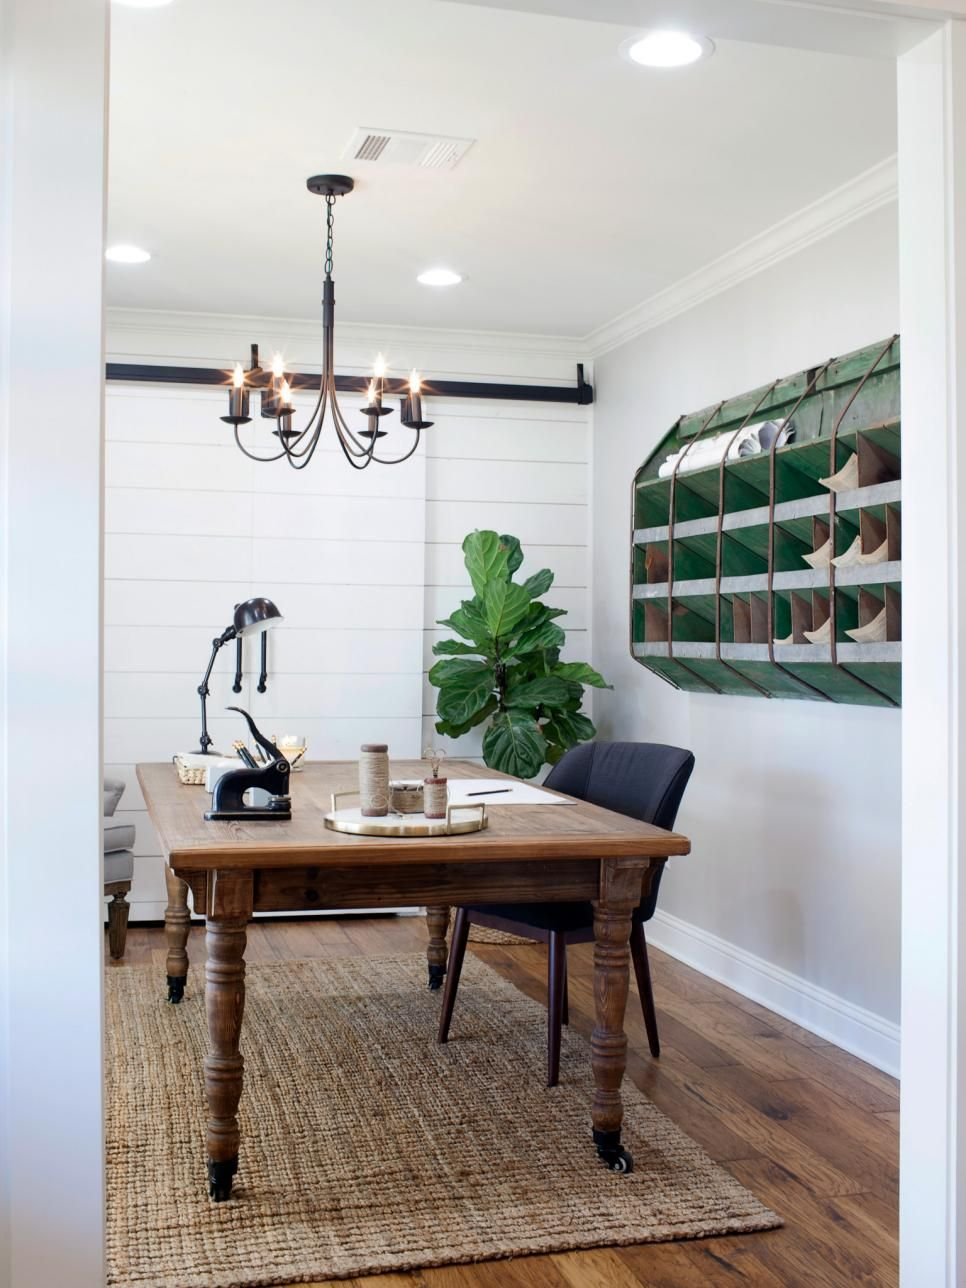 Fixer upper carriage house kitchen - Chip And Joanna Gaines May Be Miracle Workers But They Simply Can T Do Everything